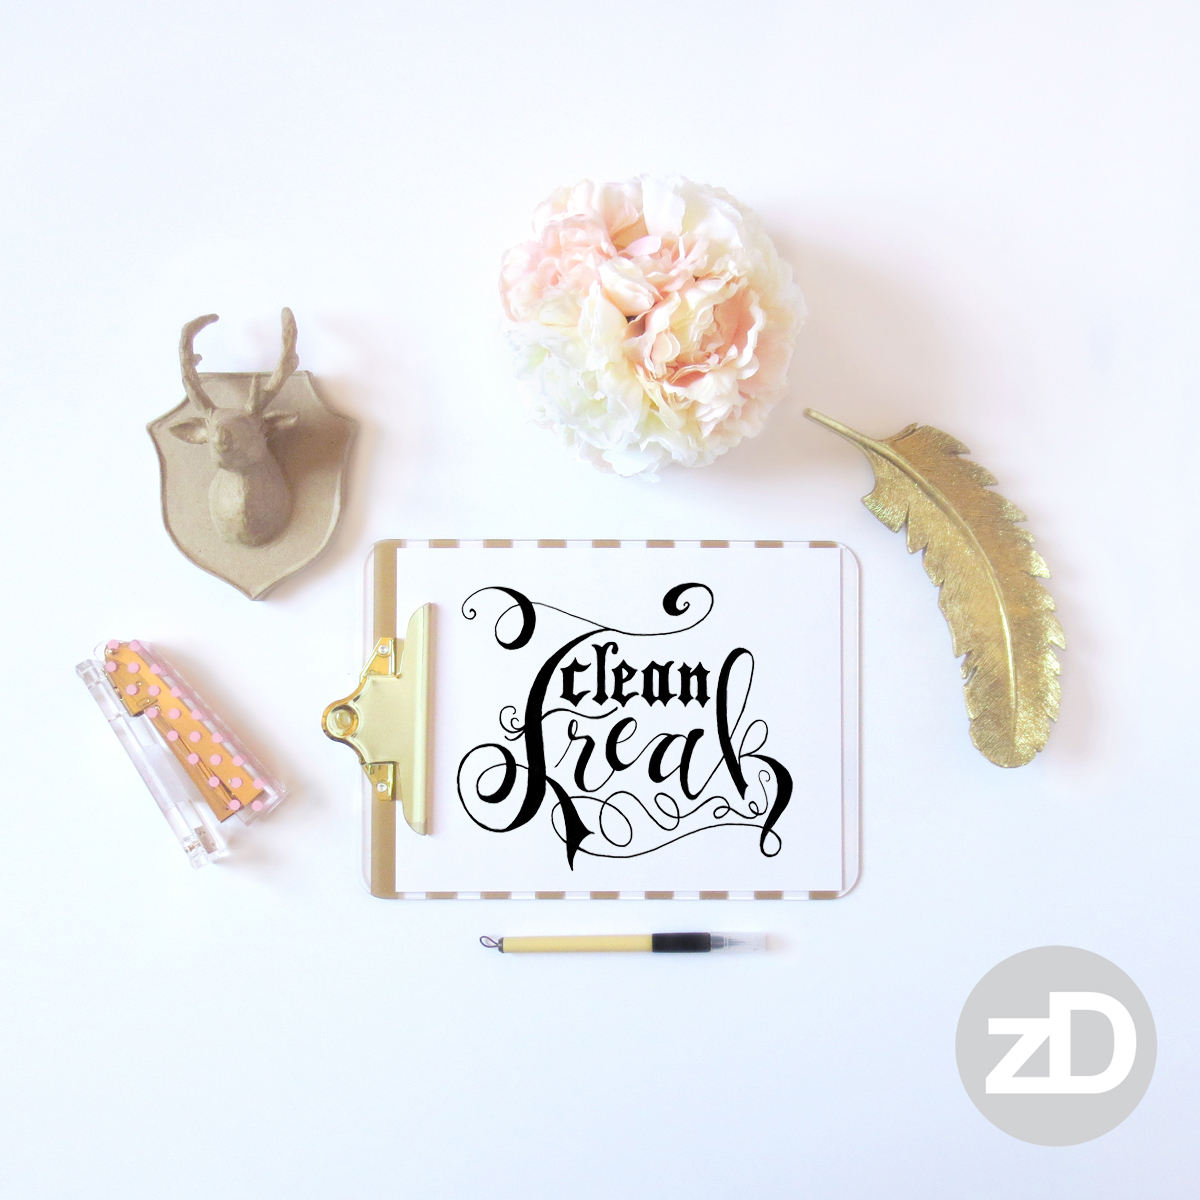 Zirkus Design | Photographing Flat Lay Product Mockups | Clean Freak Hand Lettering